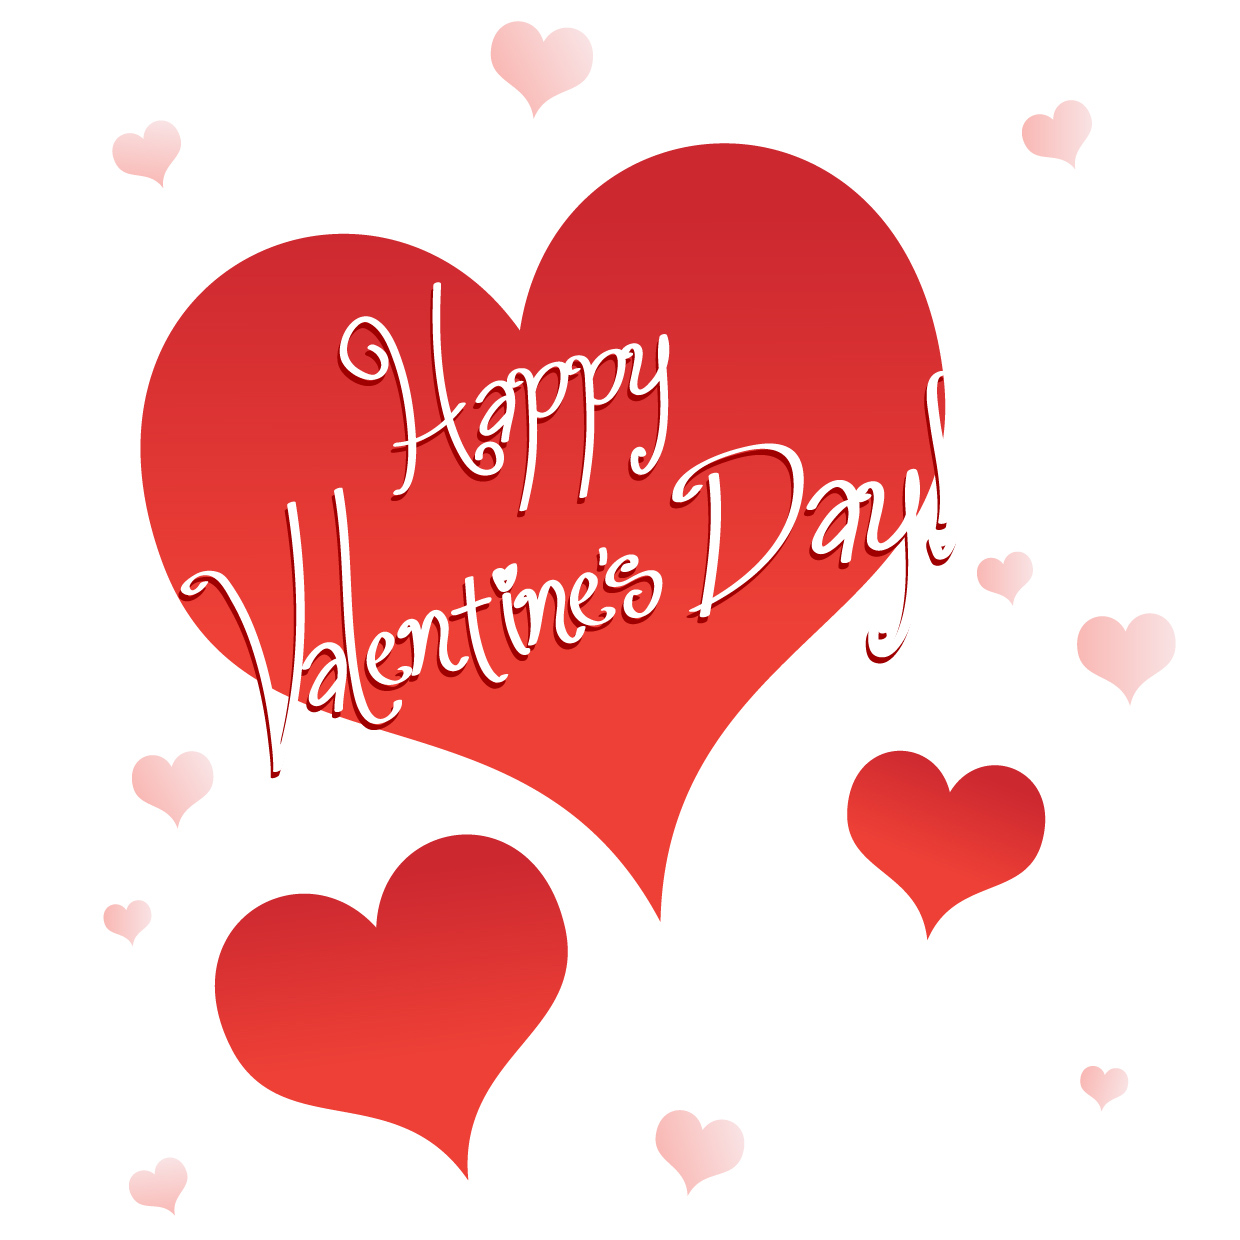 February valentines day clip art free clip art free clip art